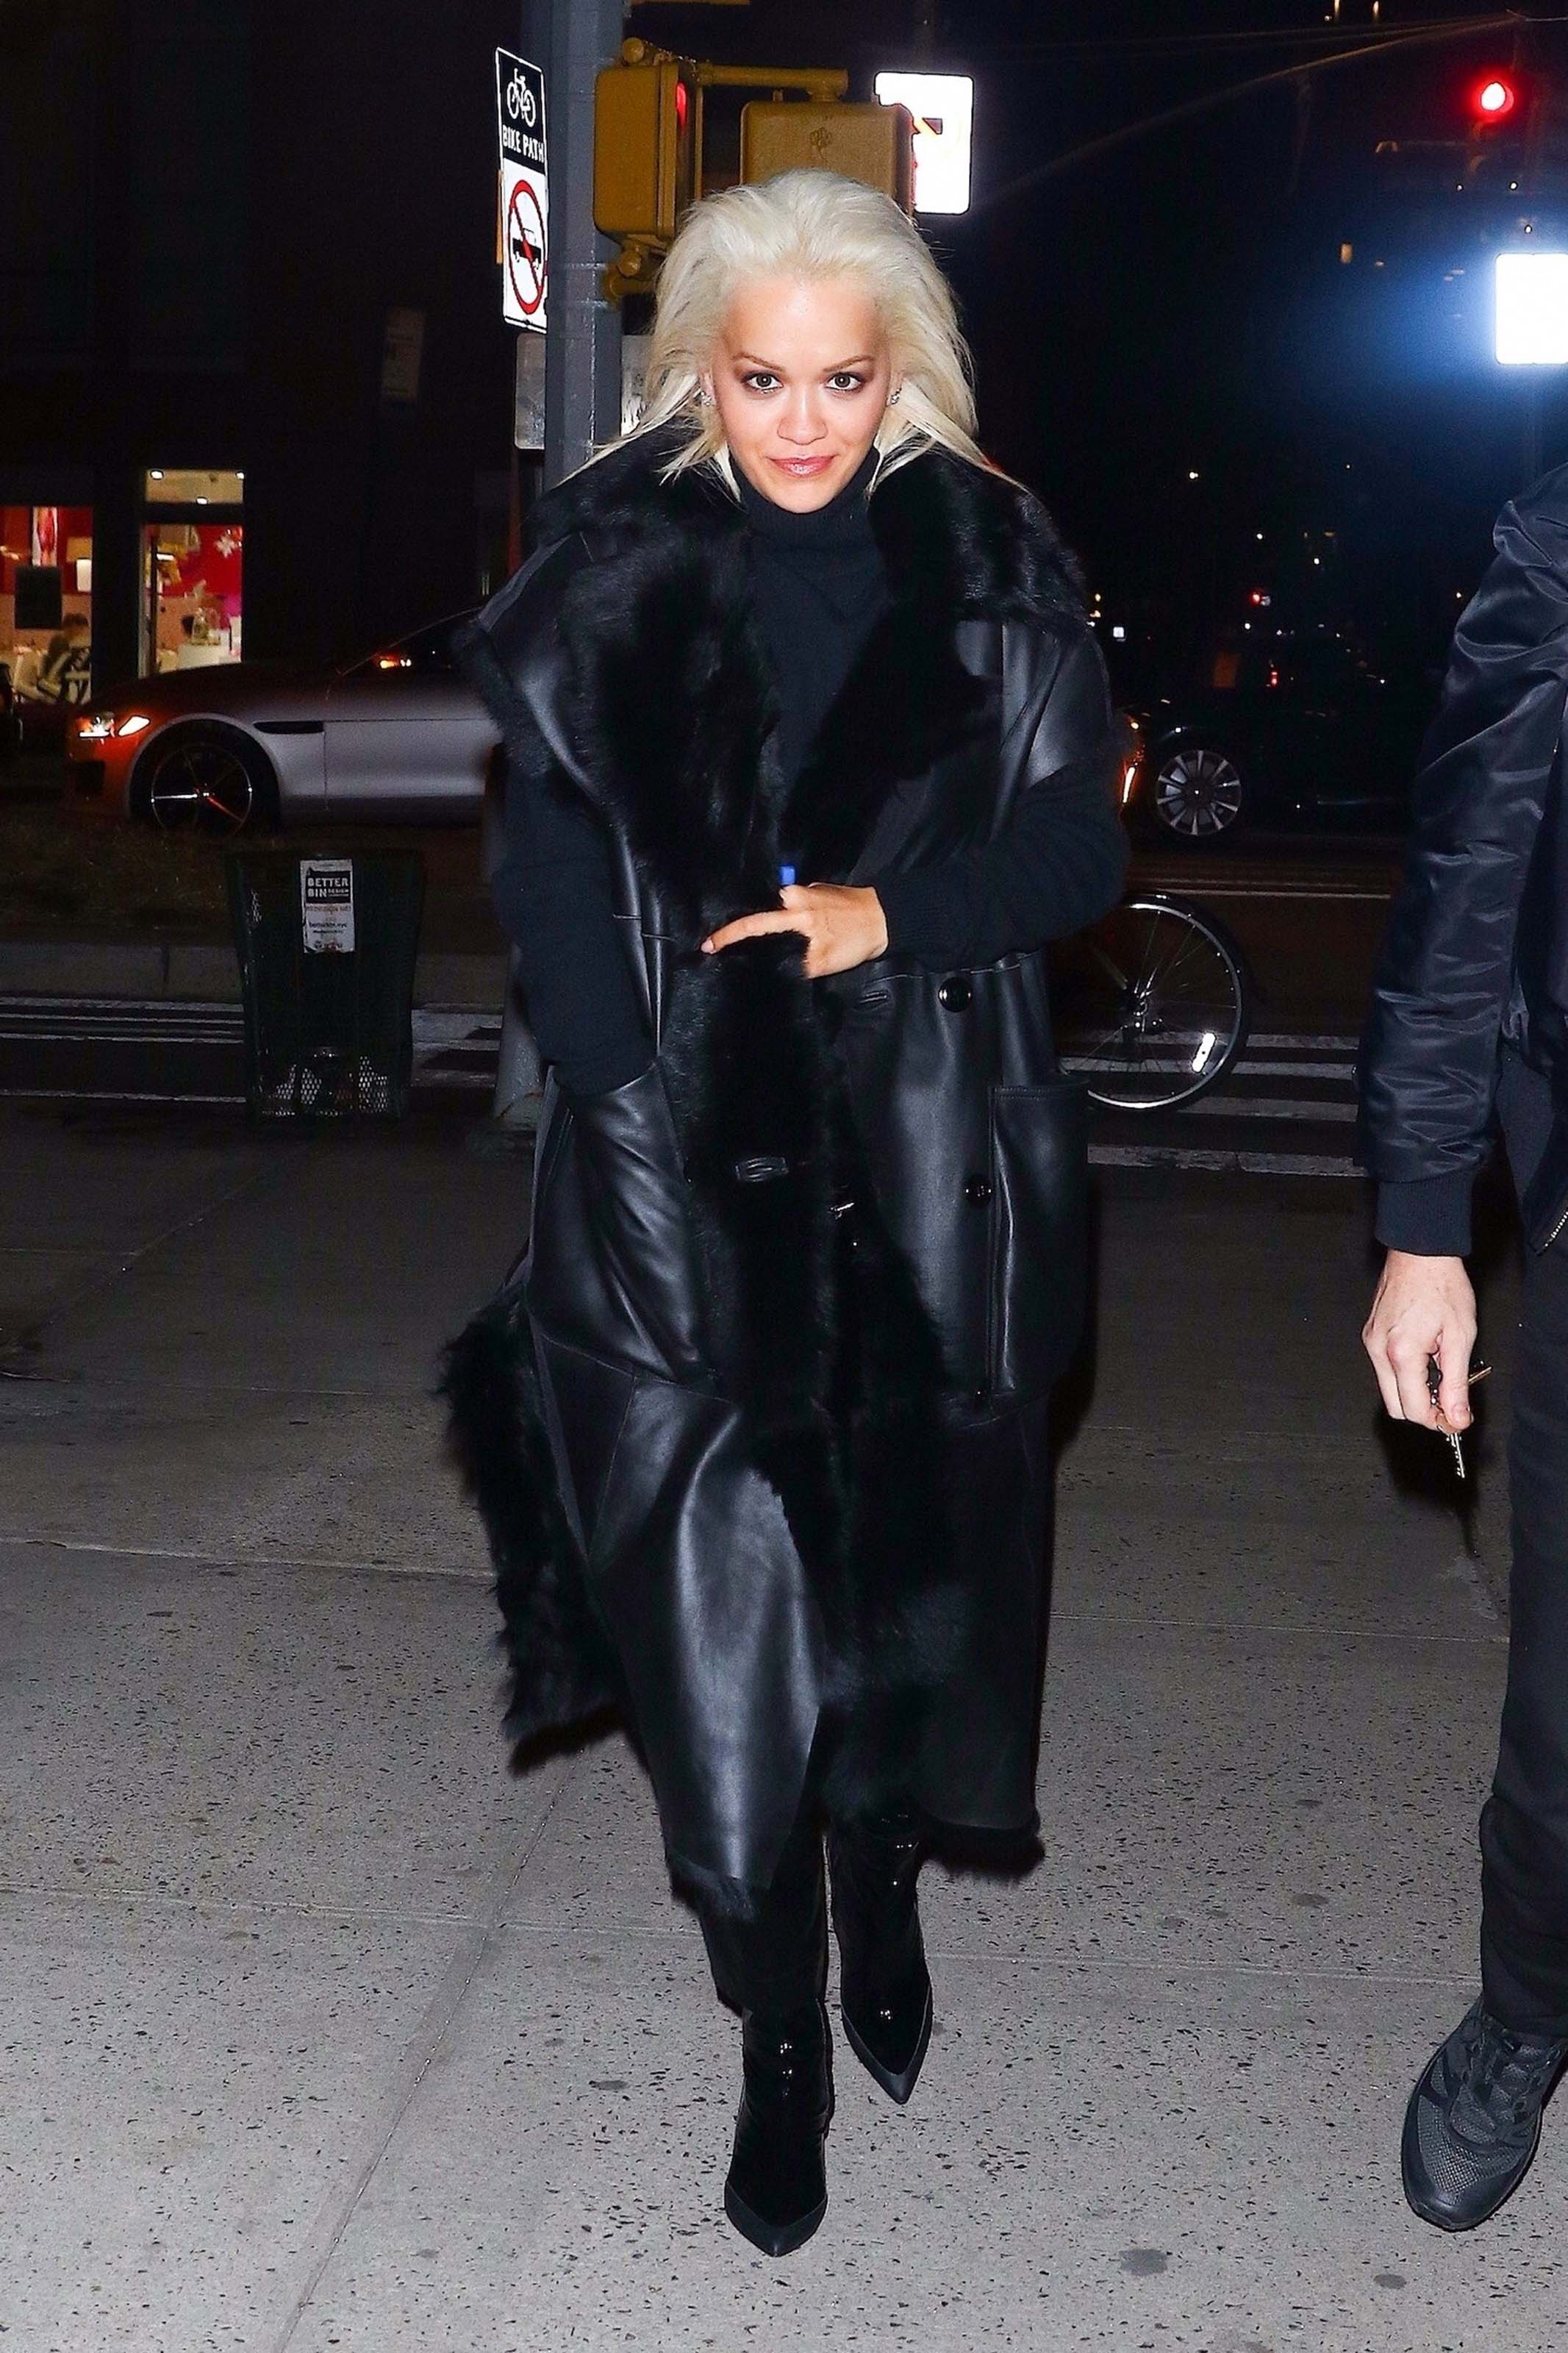 Rita Ora out in NYC